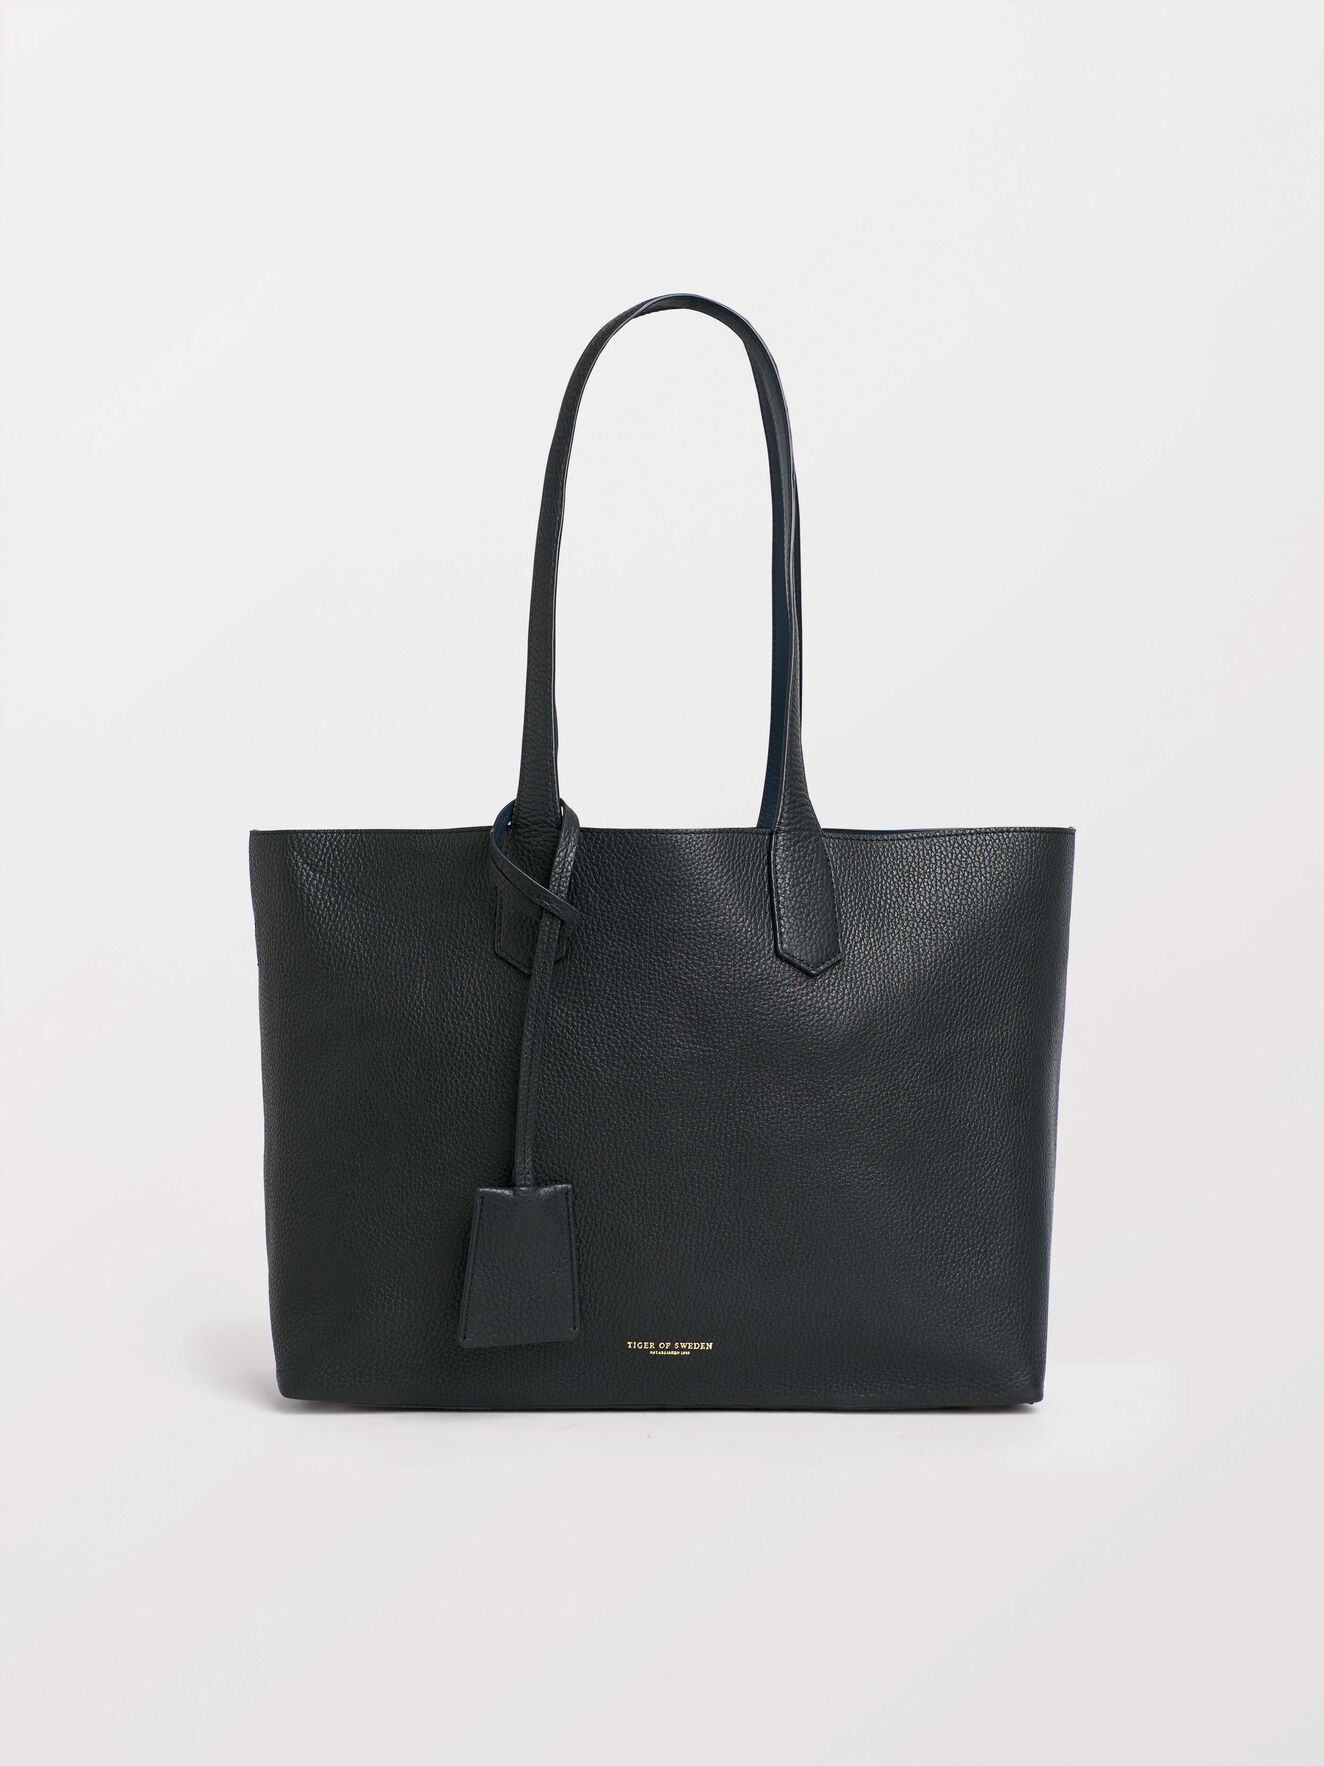 Sac Cabas Ornis in Black from Tiger of Sweden